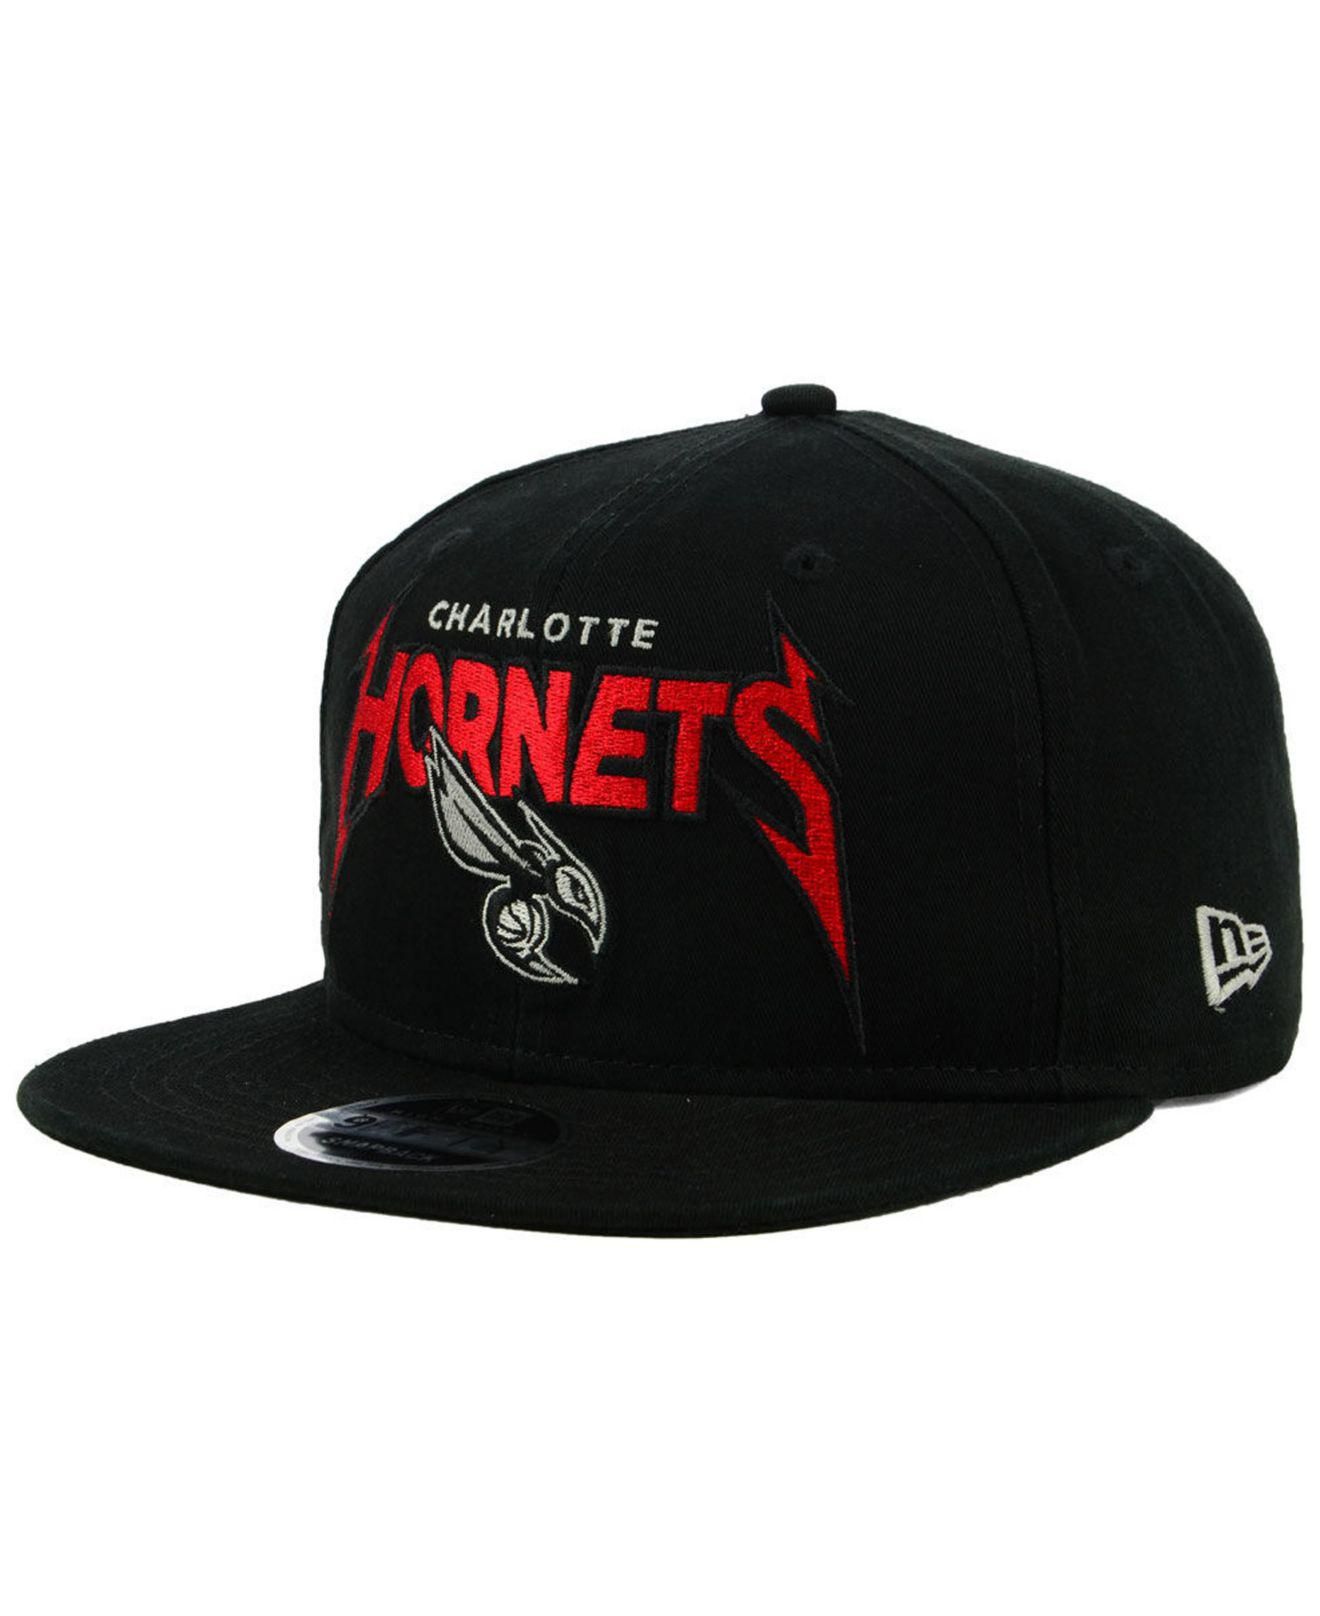 low priced 56363 d0146 ... promo code for ktz. mens black charlotte hornets 90s throwback groupie 9fifty  snapback cap e28d6